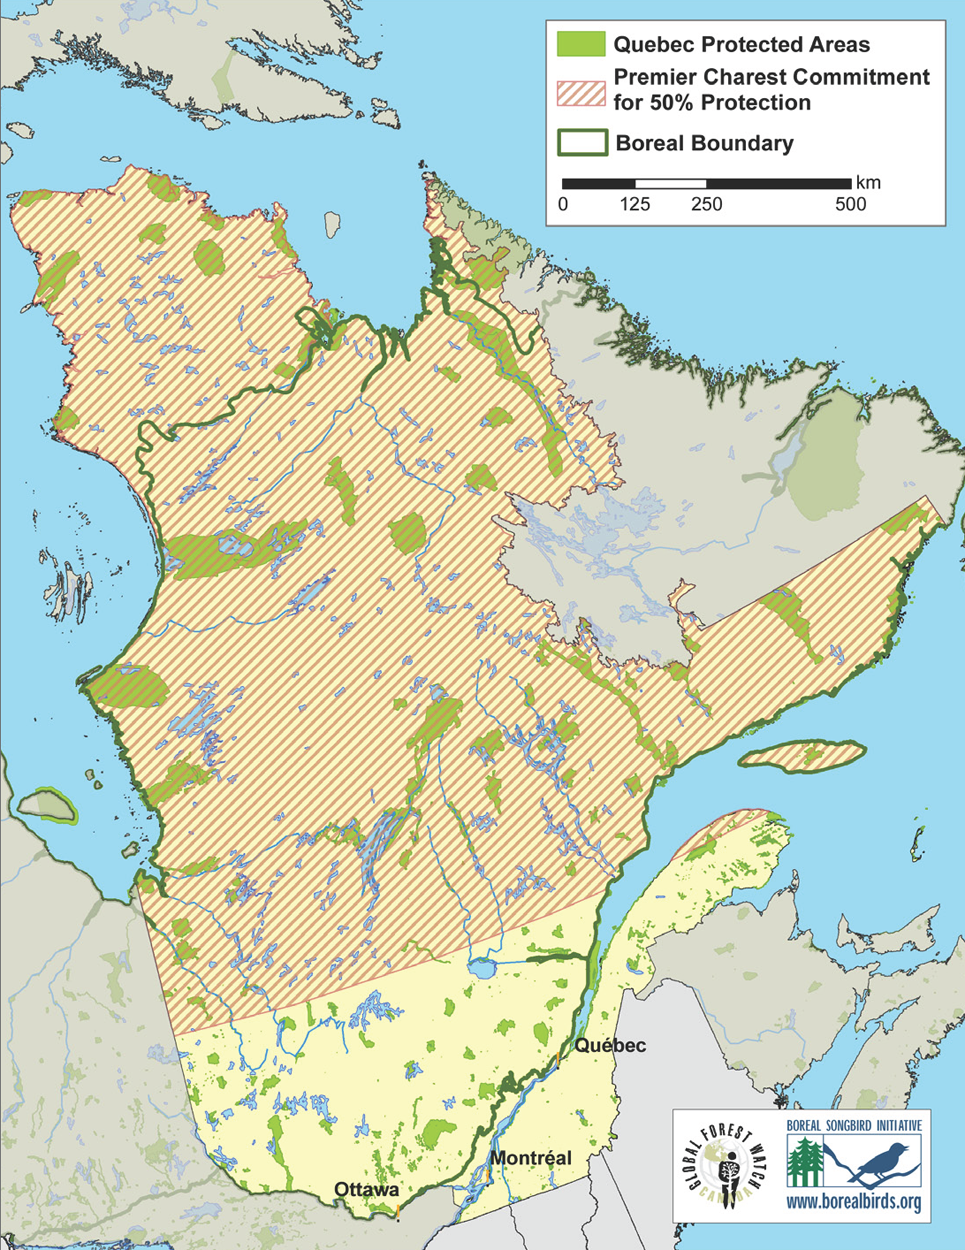 Quebec Protexted Areas